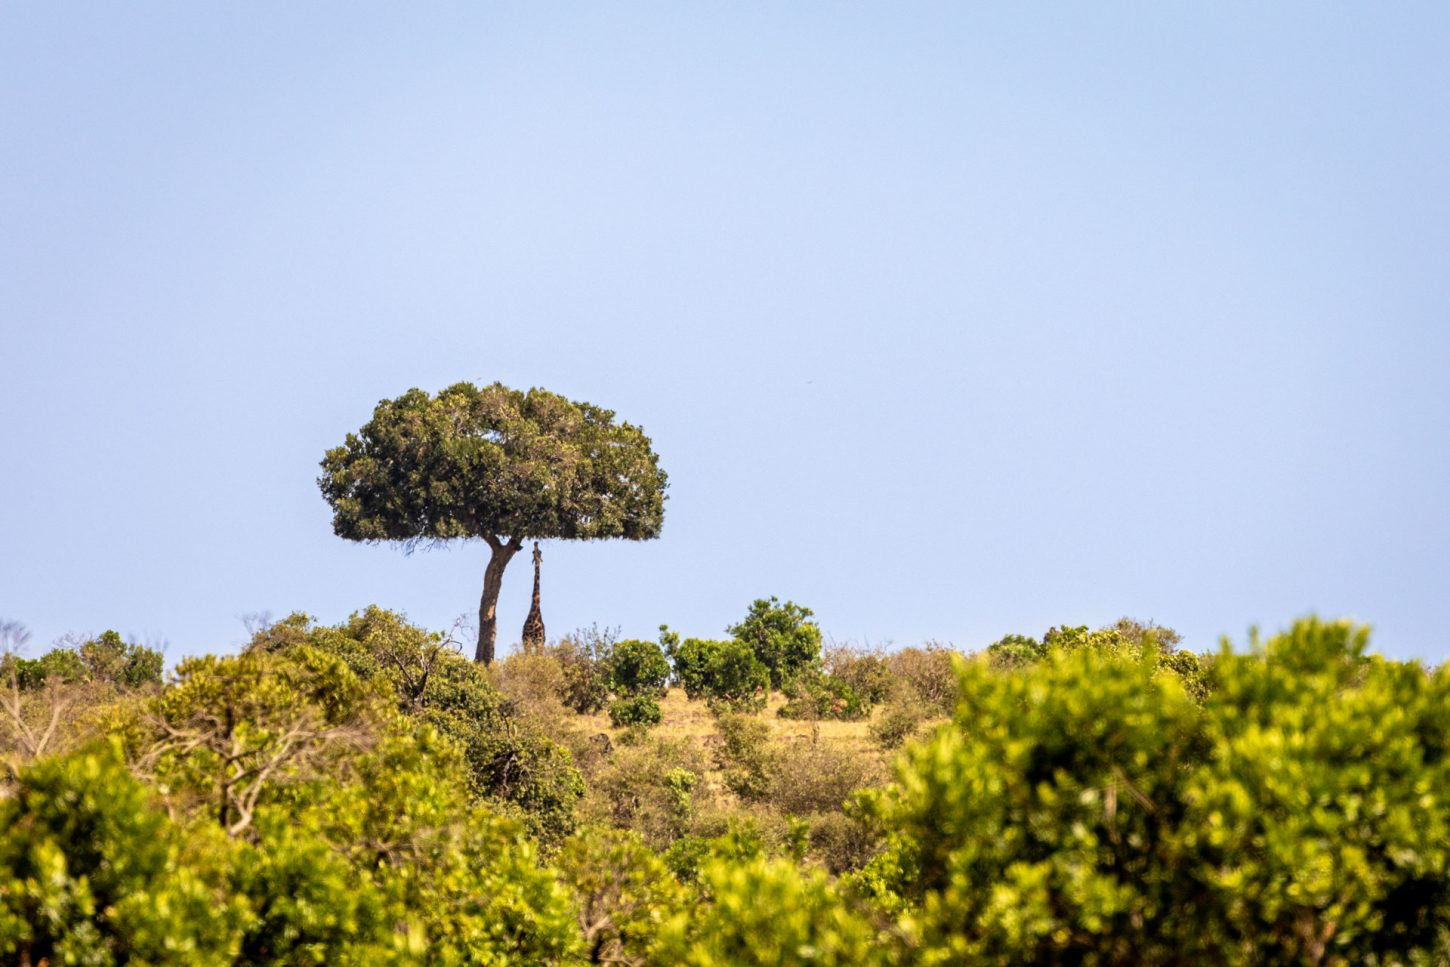 Giraffe reaching up for leaves on tall tree